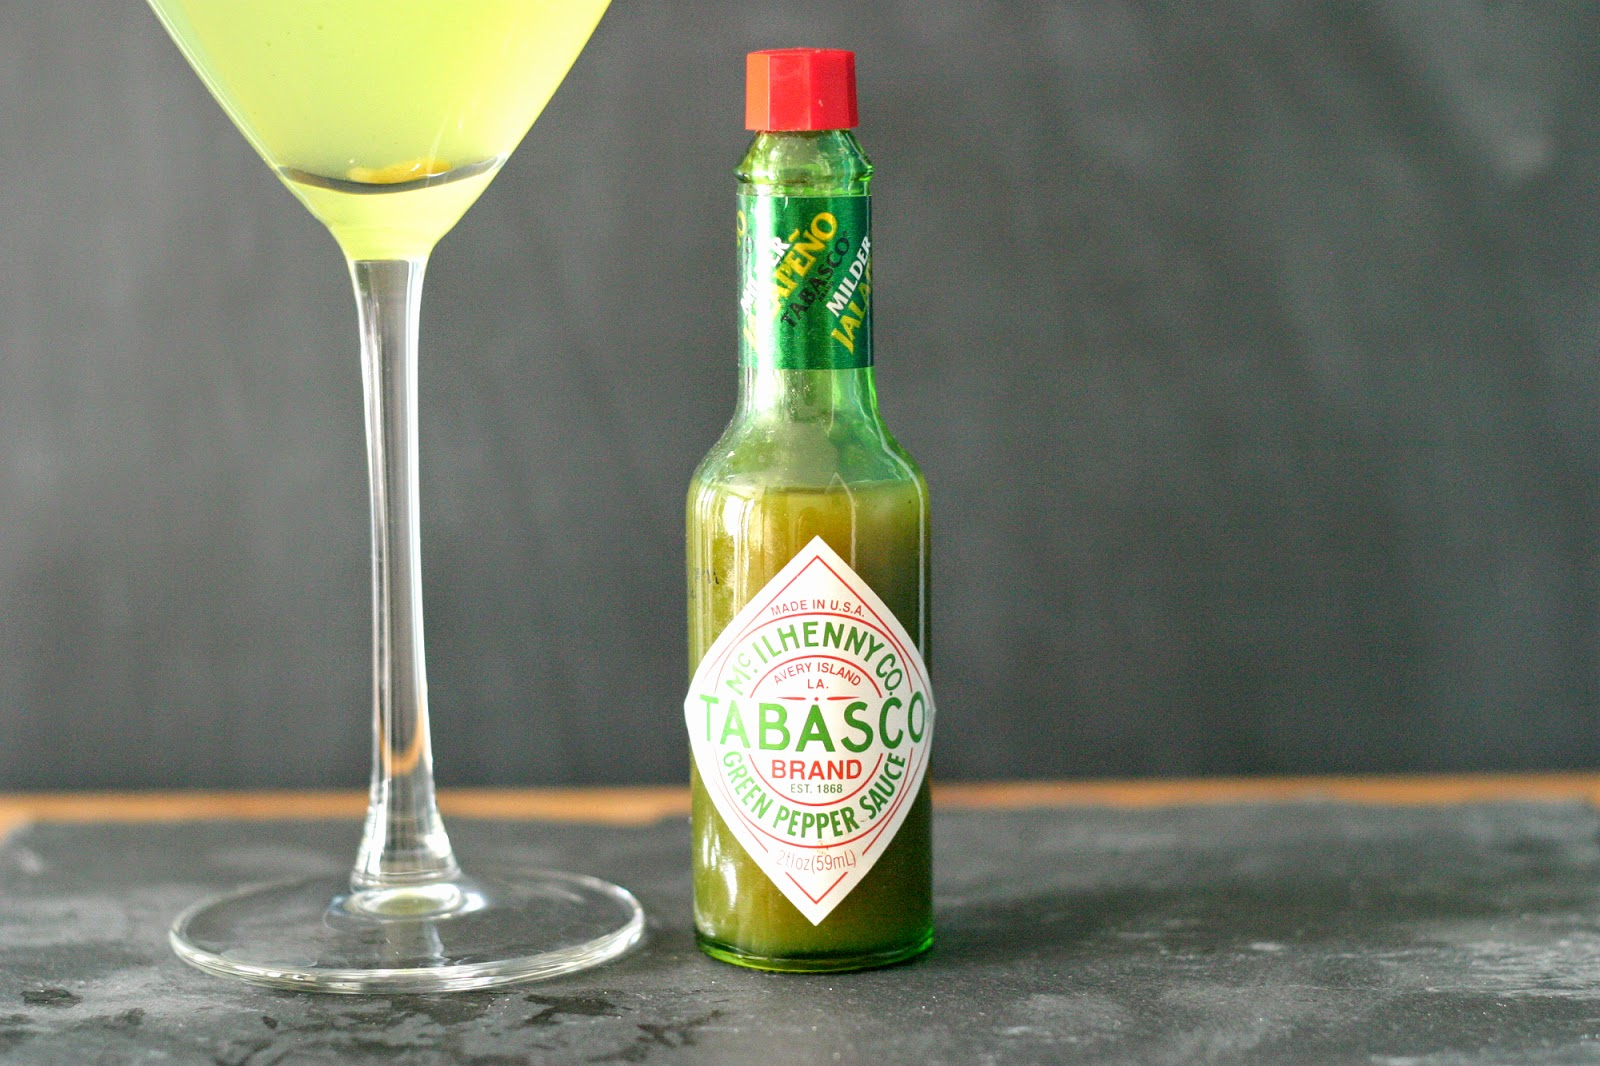 Green Tabasco Sauce